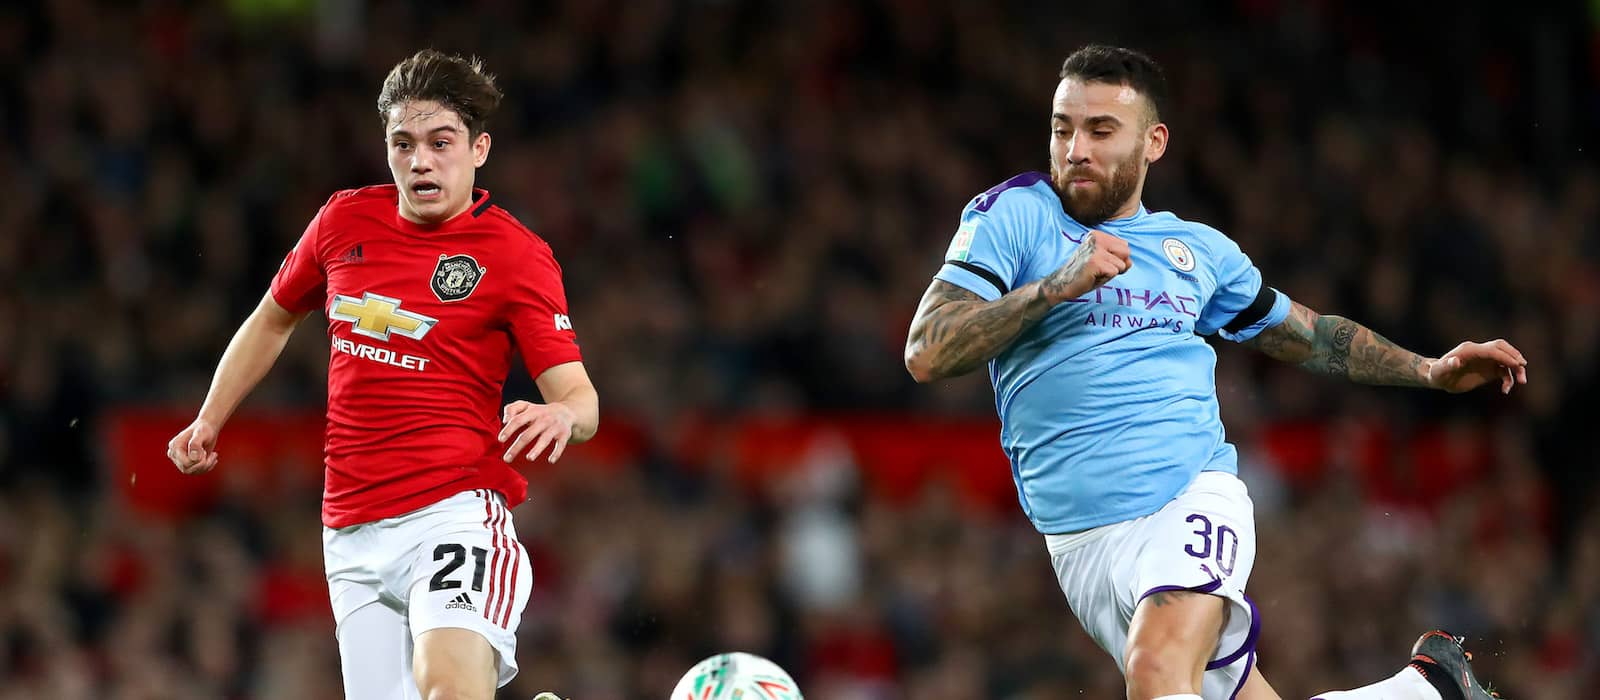 Player ratings: Manchester United 1-3 Manchester City